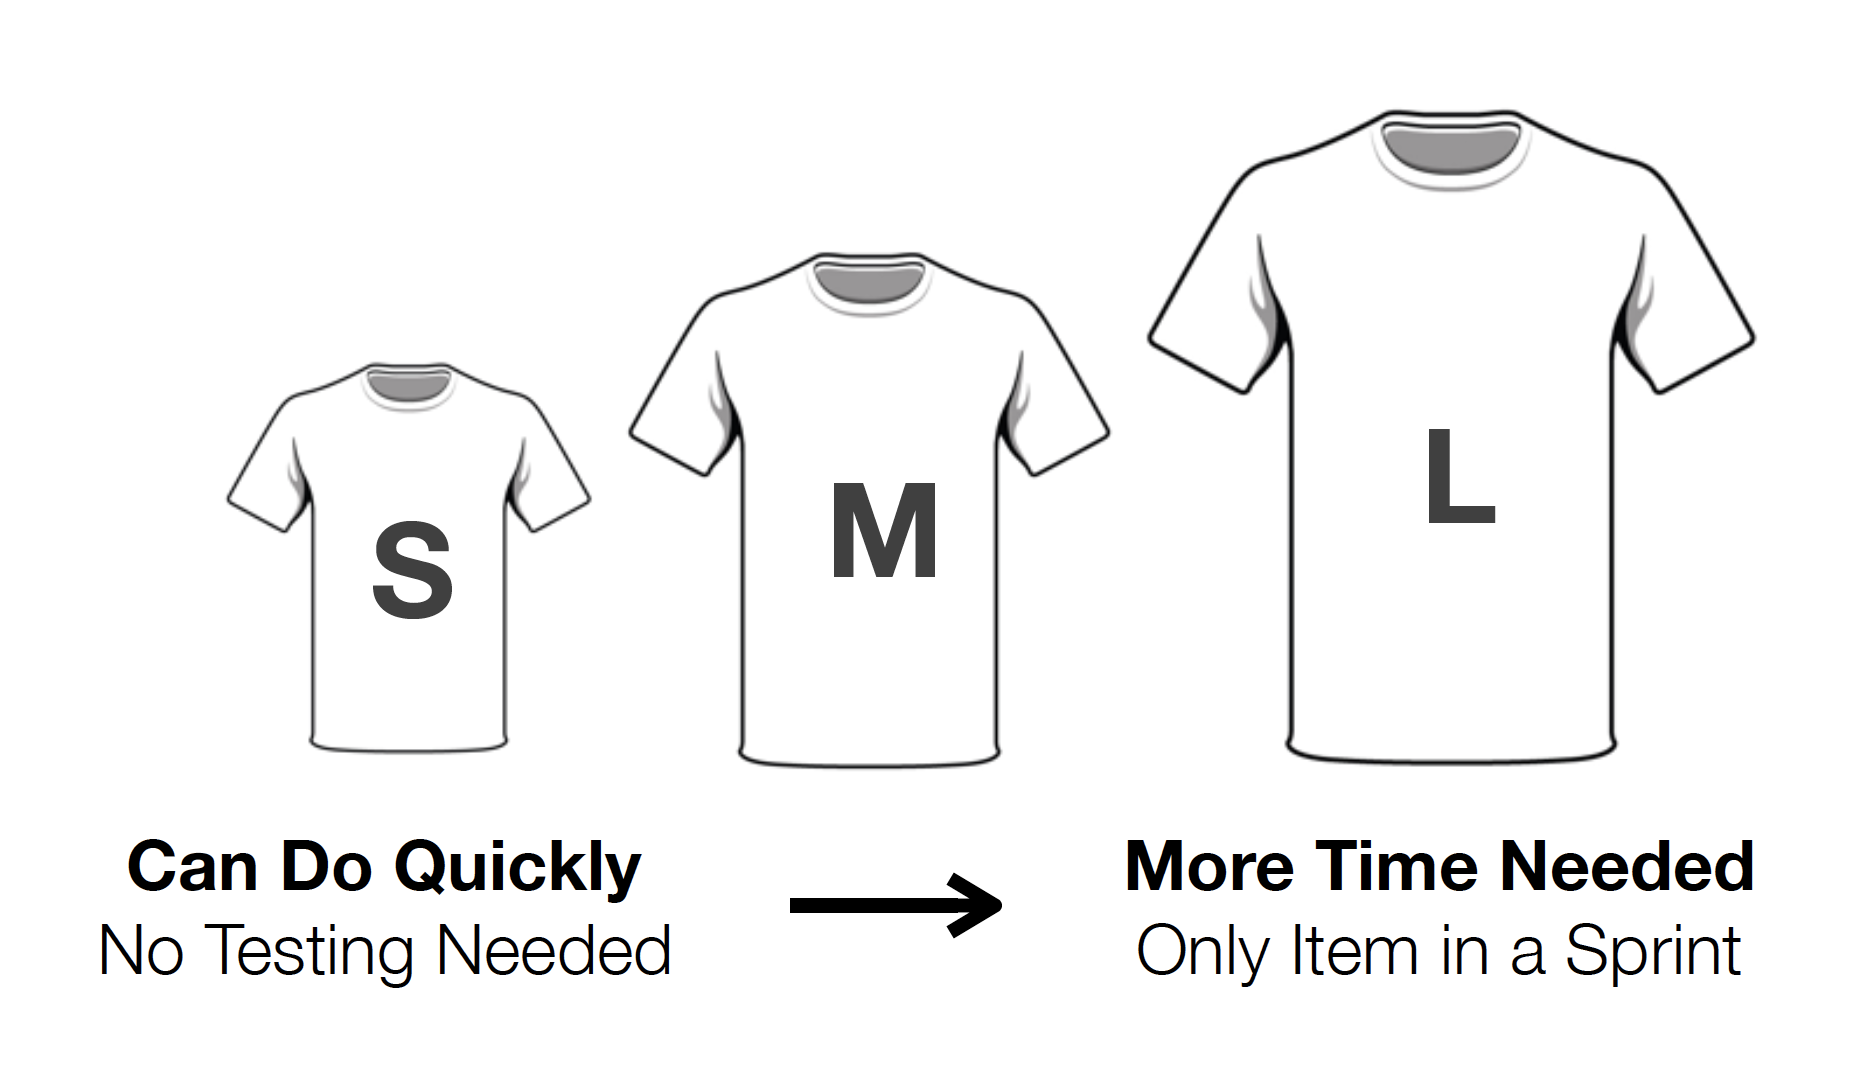 Estimation with t-shirt sizes